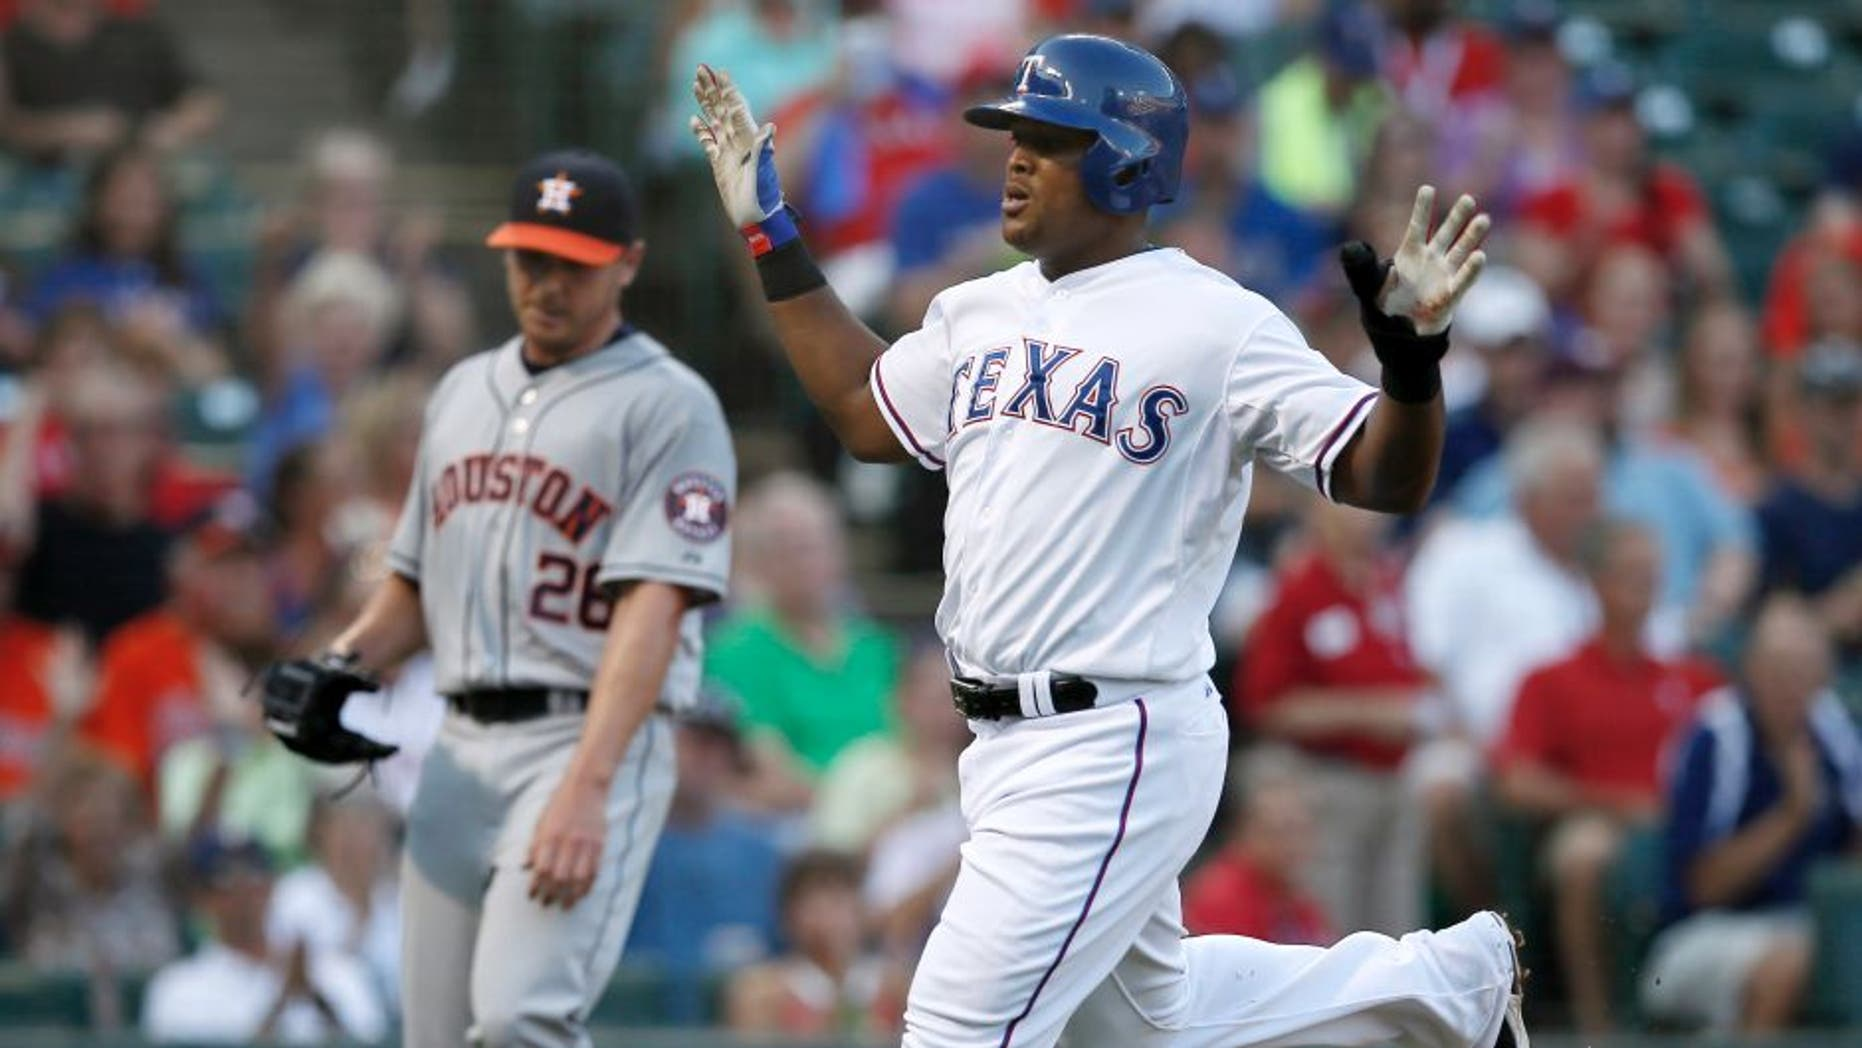 Texas Rangers' Adrian Beltre celebrates after crossing the plate, scoring on a Elvis Andrus single off of Houston Astros' Scott Kazmir, rear, in the first inning of a baseball game, Wednesday Aug. 5, 2015, in Arlington, Texas. (AP Photo/Tony Gutierrez)